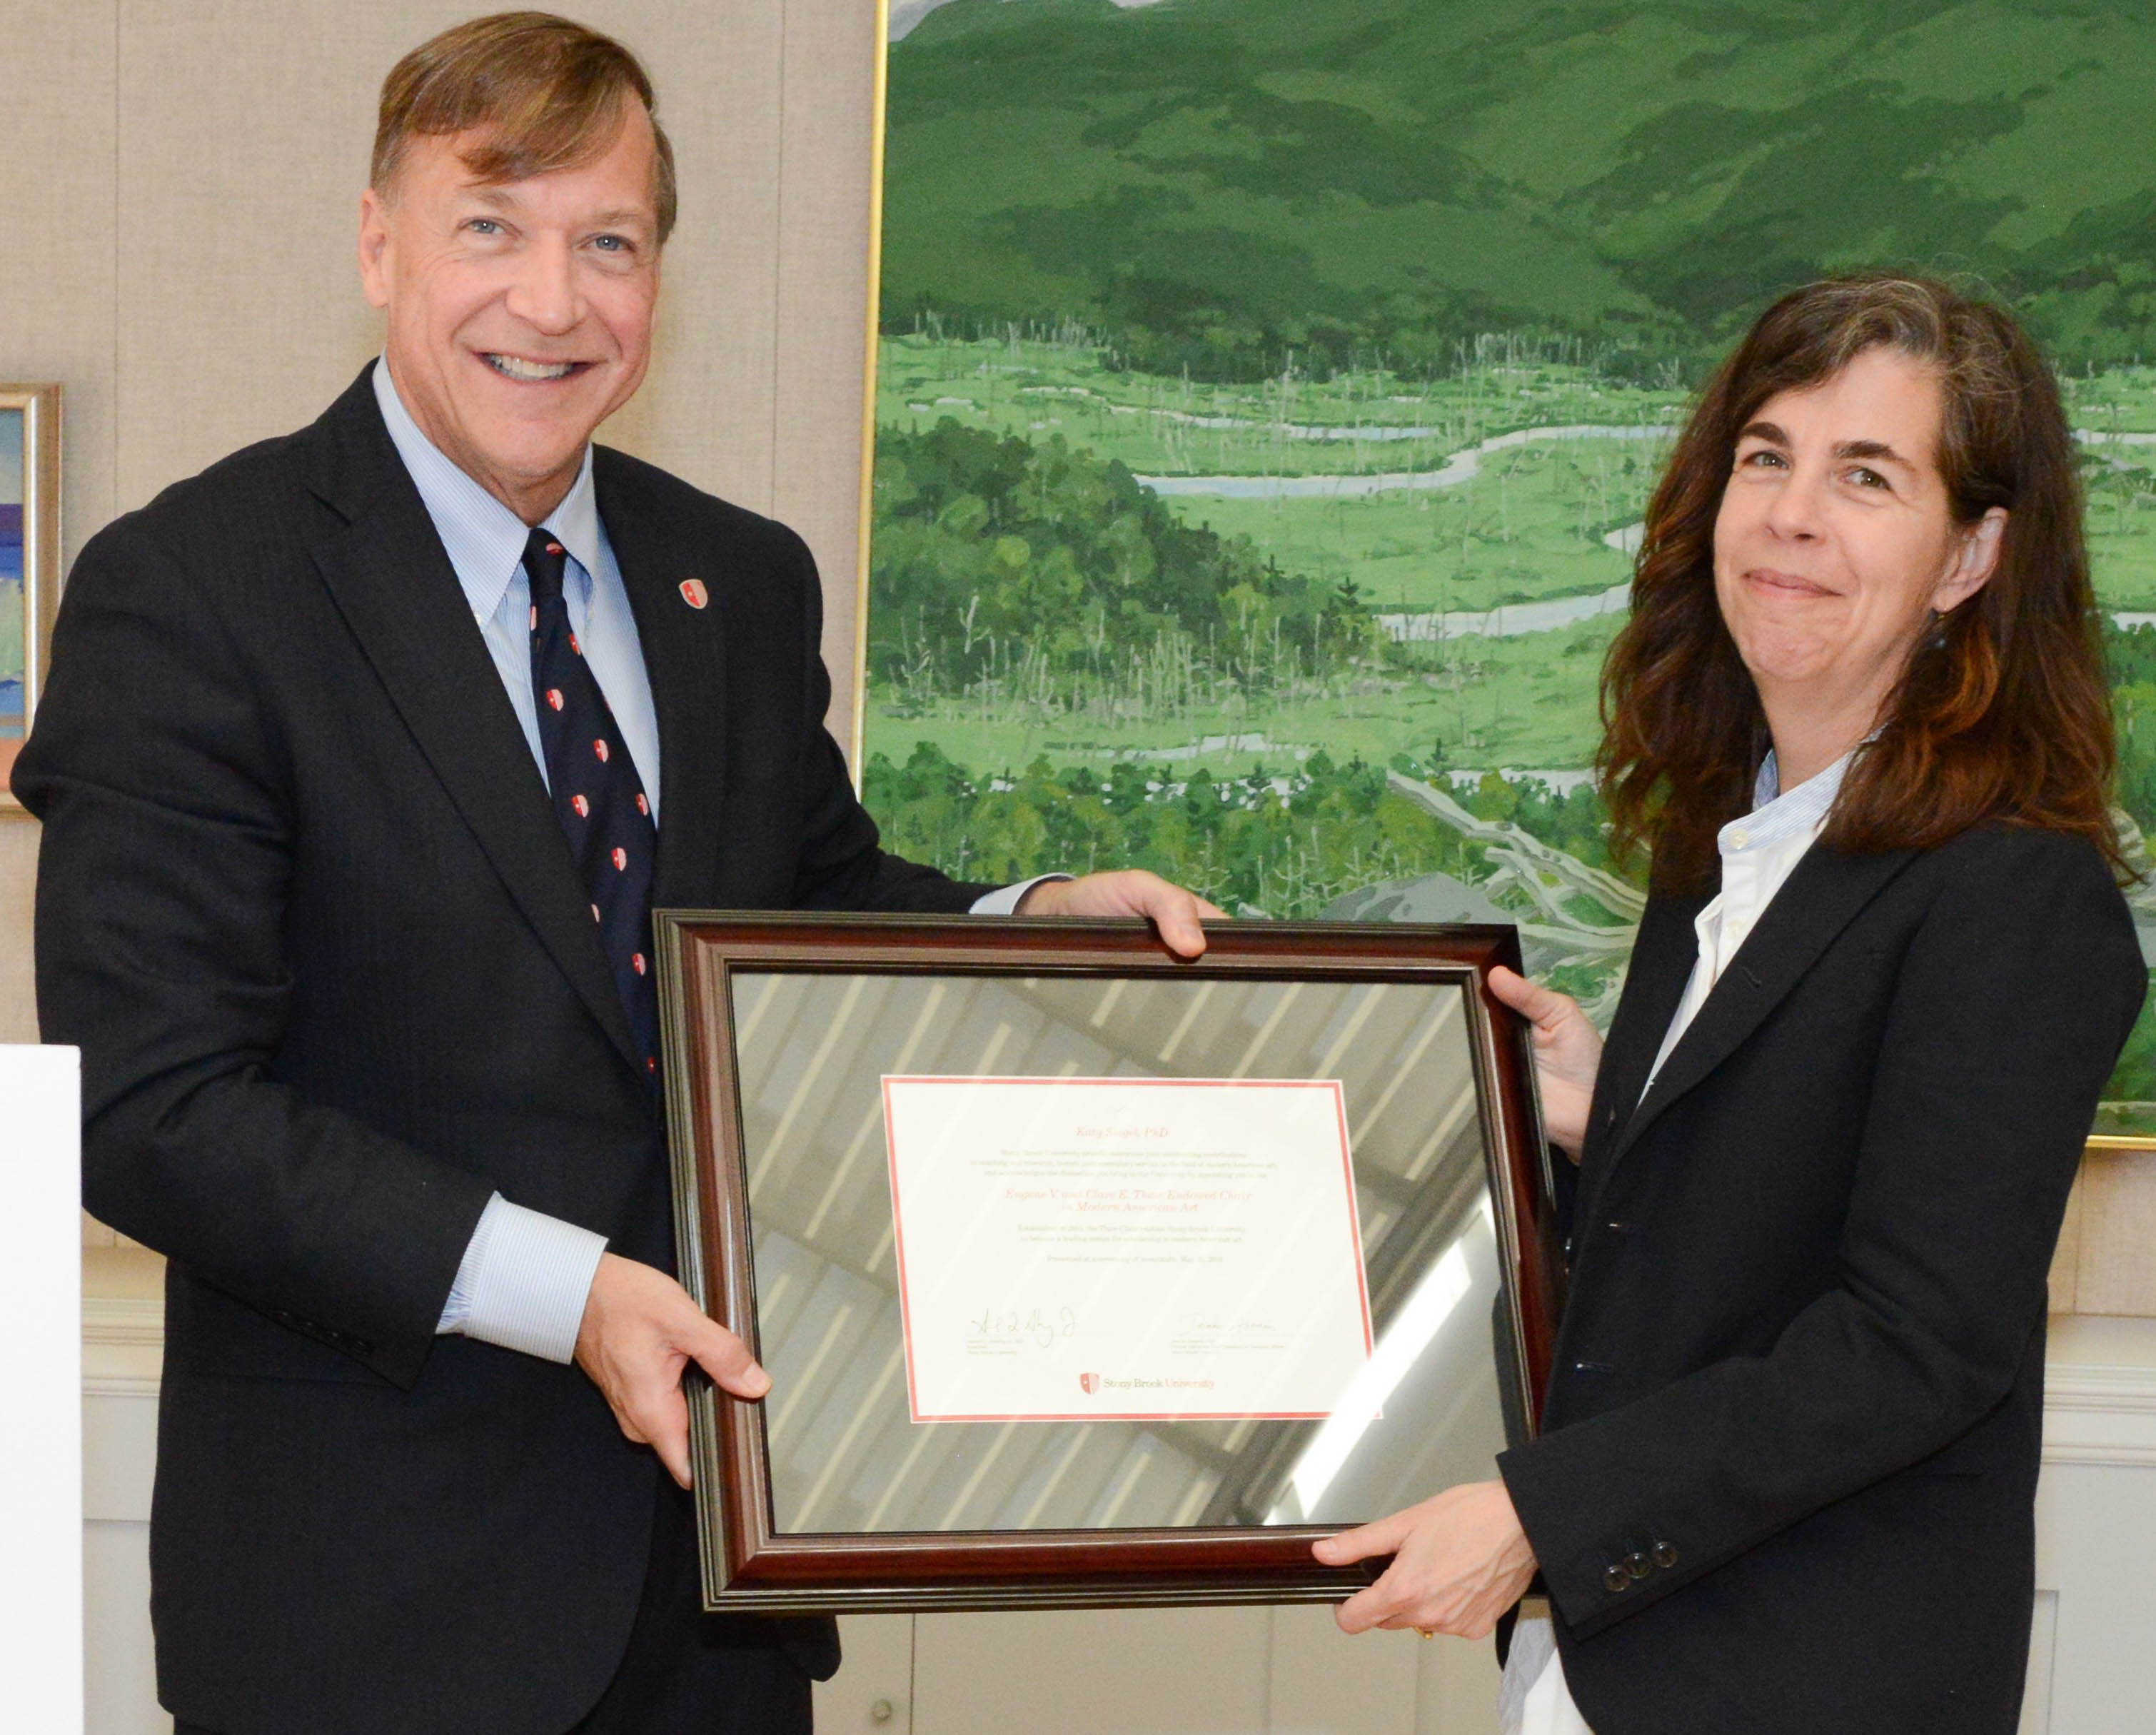 Stony Brook University President Samuel L. Stanley Jr. presents Katy Siegel, PhD, with a declaration honoring her contributions in teaching, research and service to the field of modern American art as she was appointed the inaugural holder of the Eugene V. and Clare E. Thaw Endowed Chair in Modern American Art.